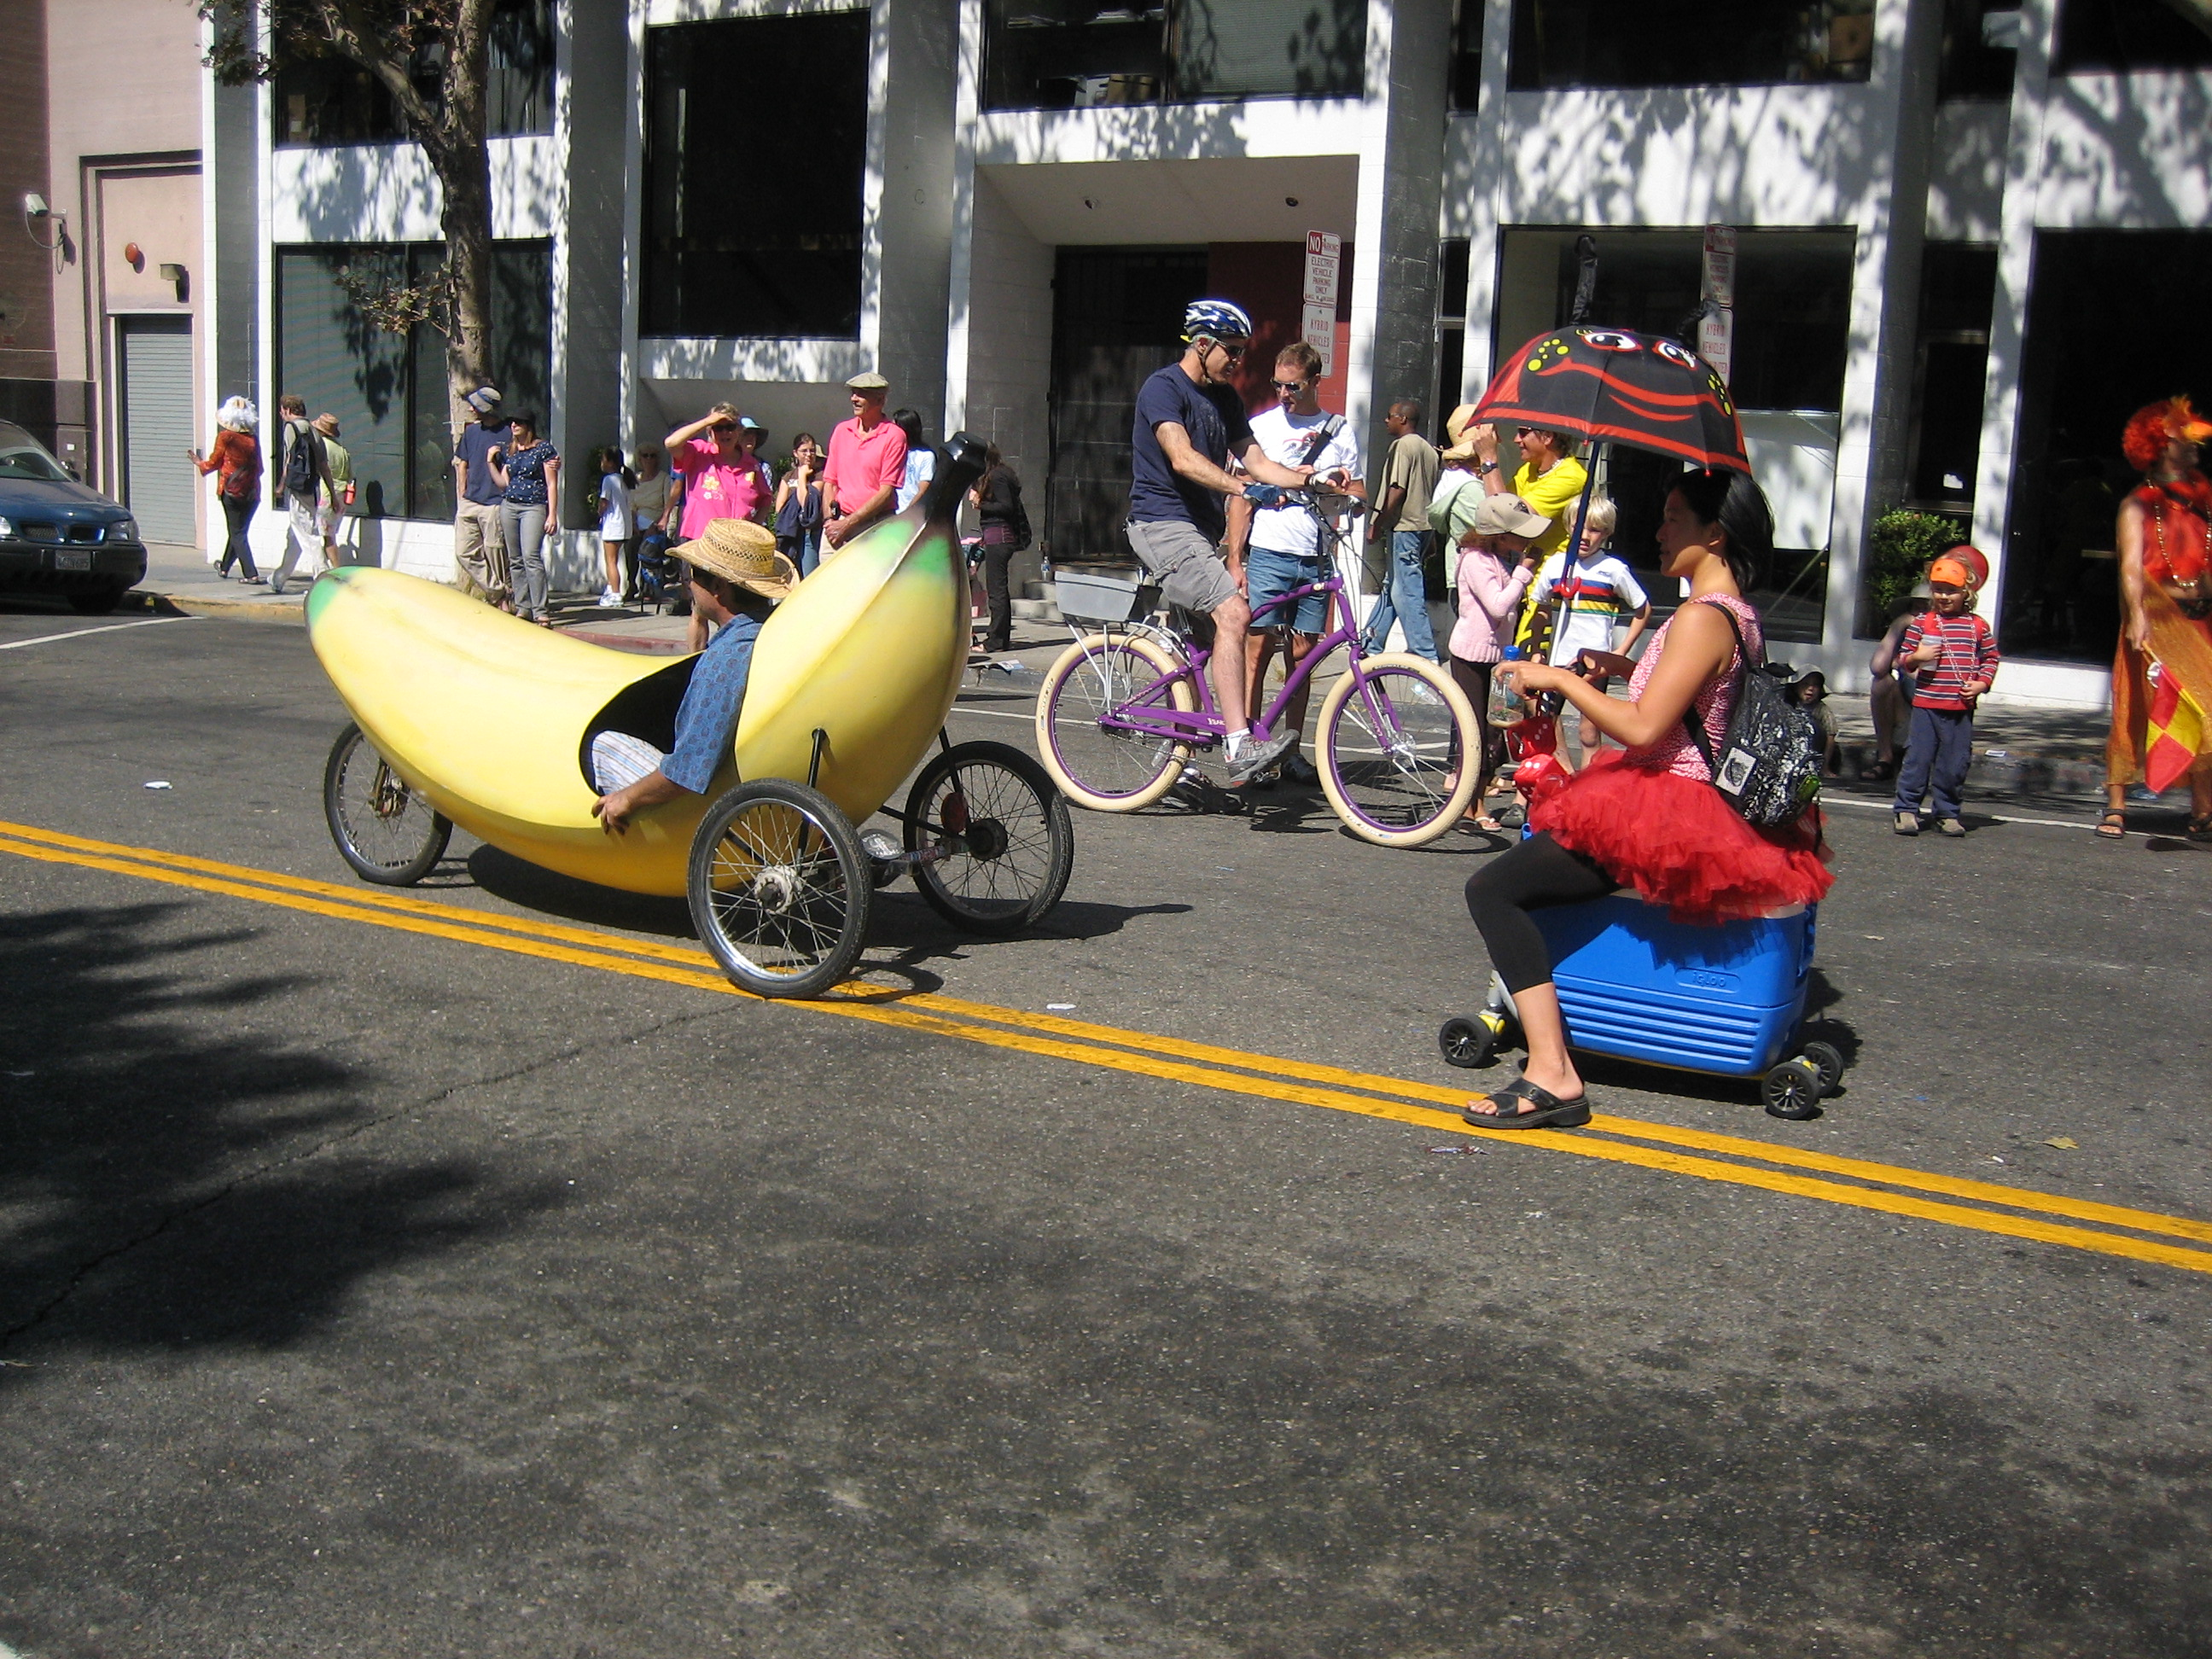 The requisite banana-mobile.